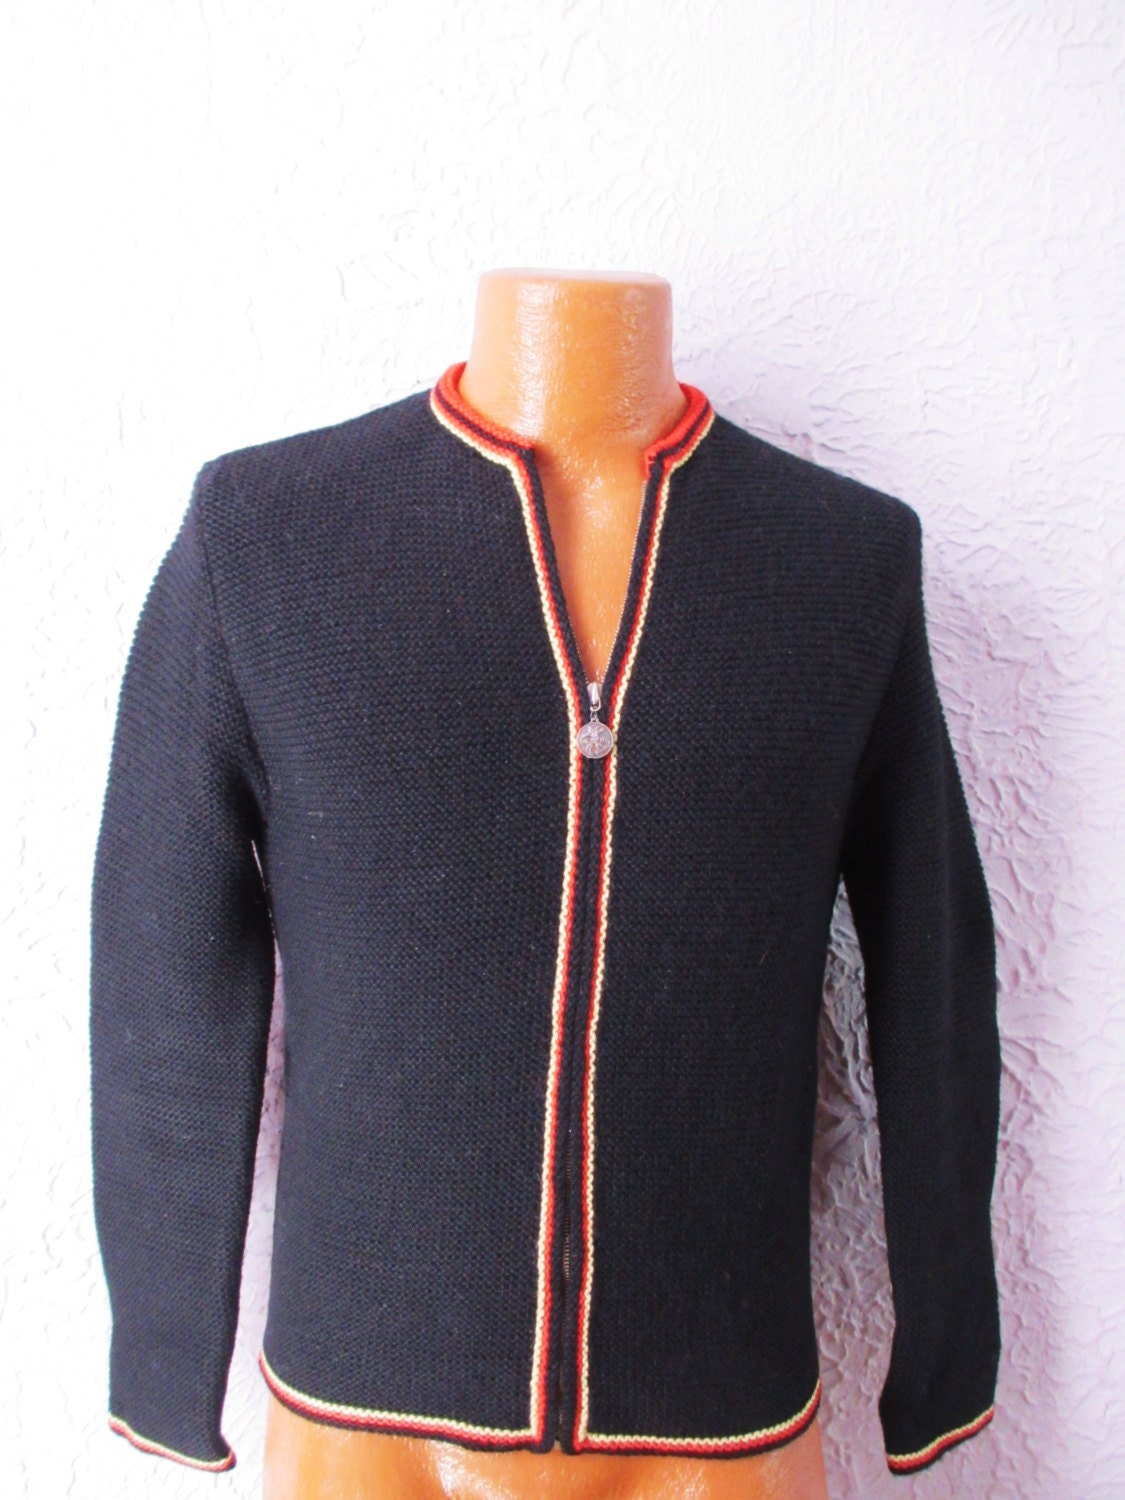 You've searched for Vintage Men's Cardigans! Etsy has thousands of unique options to choose from, like handmade goods, vintage finds, and one-of-a-kind gifts. Our global marketplace of sellers can help you find extraordinary items at any price range.